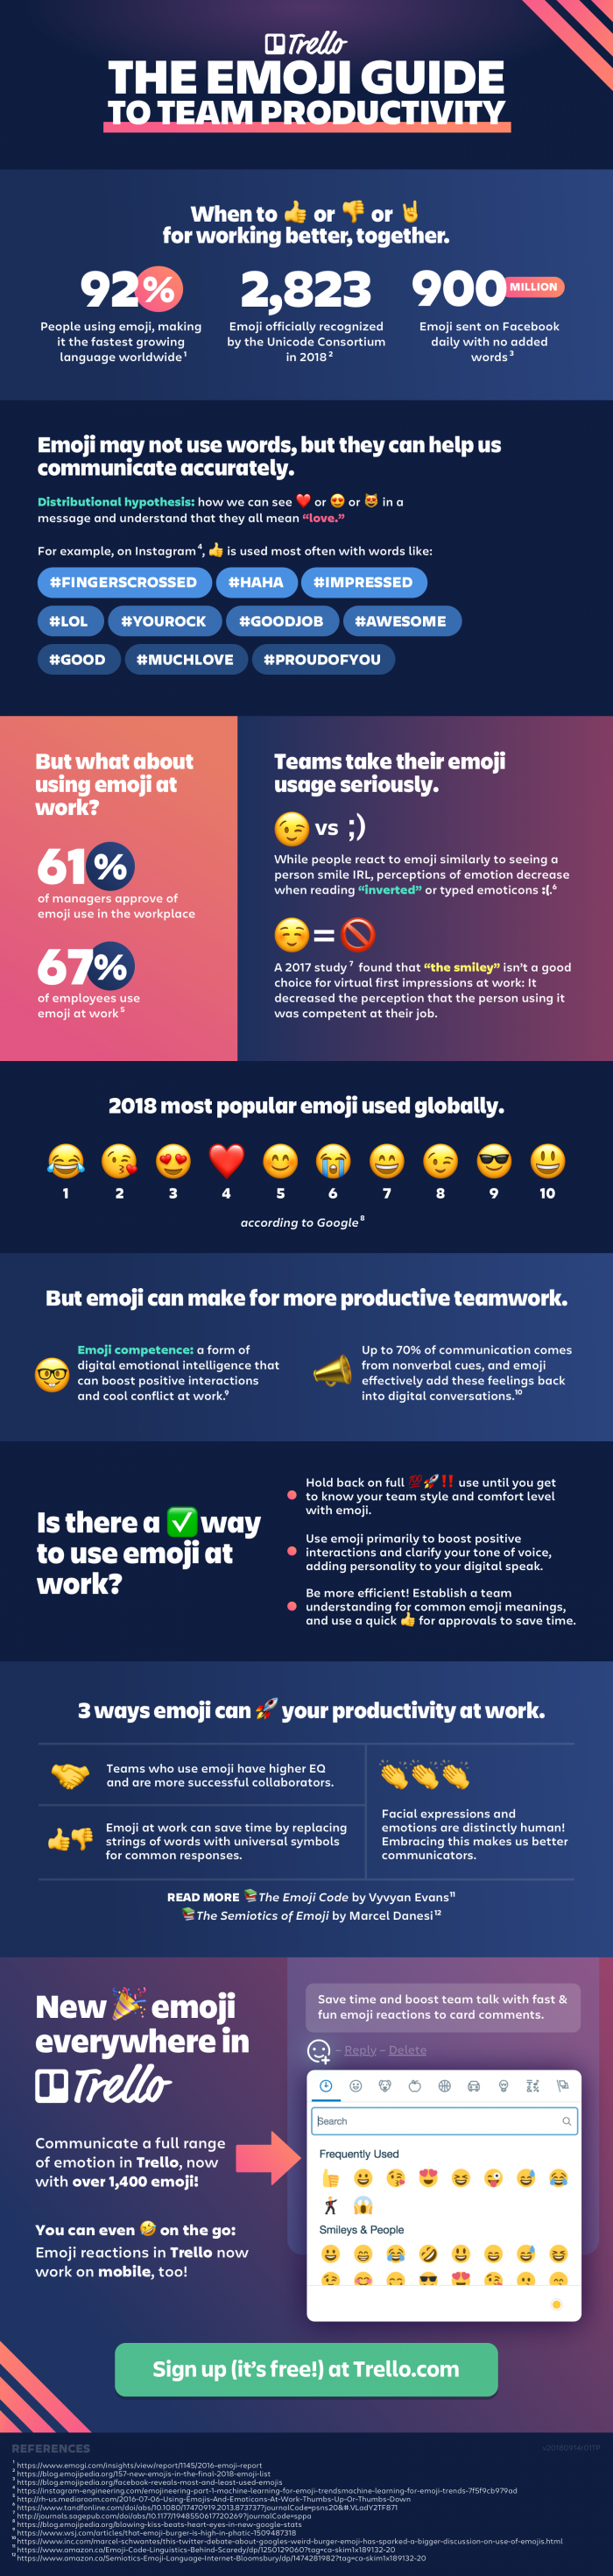 THE GUIDE OF EMOJI TO THE PRODUCTIVITY  #INFOGRAPHIC